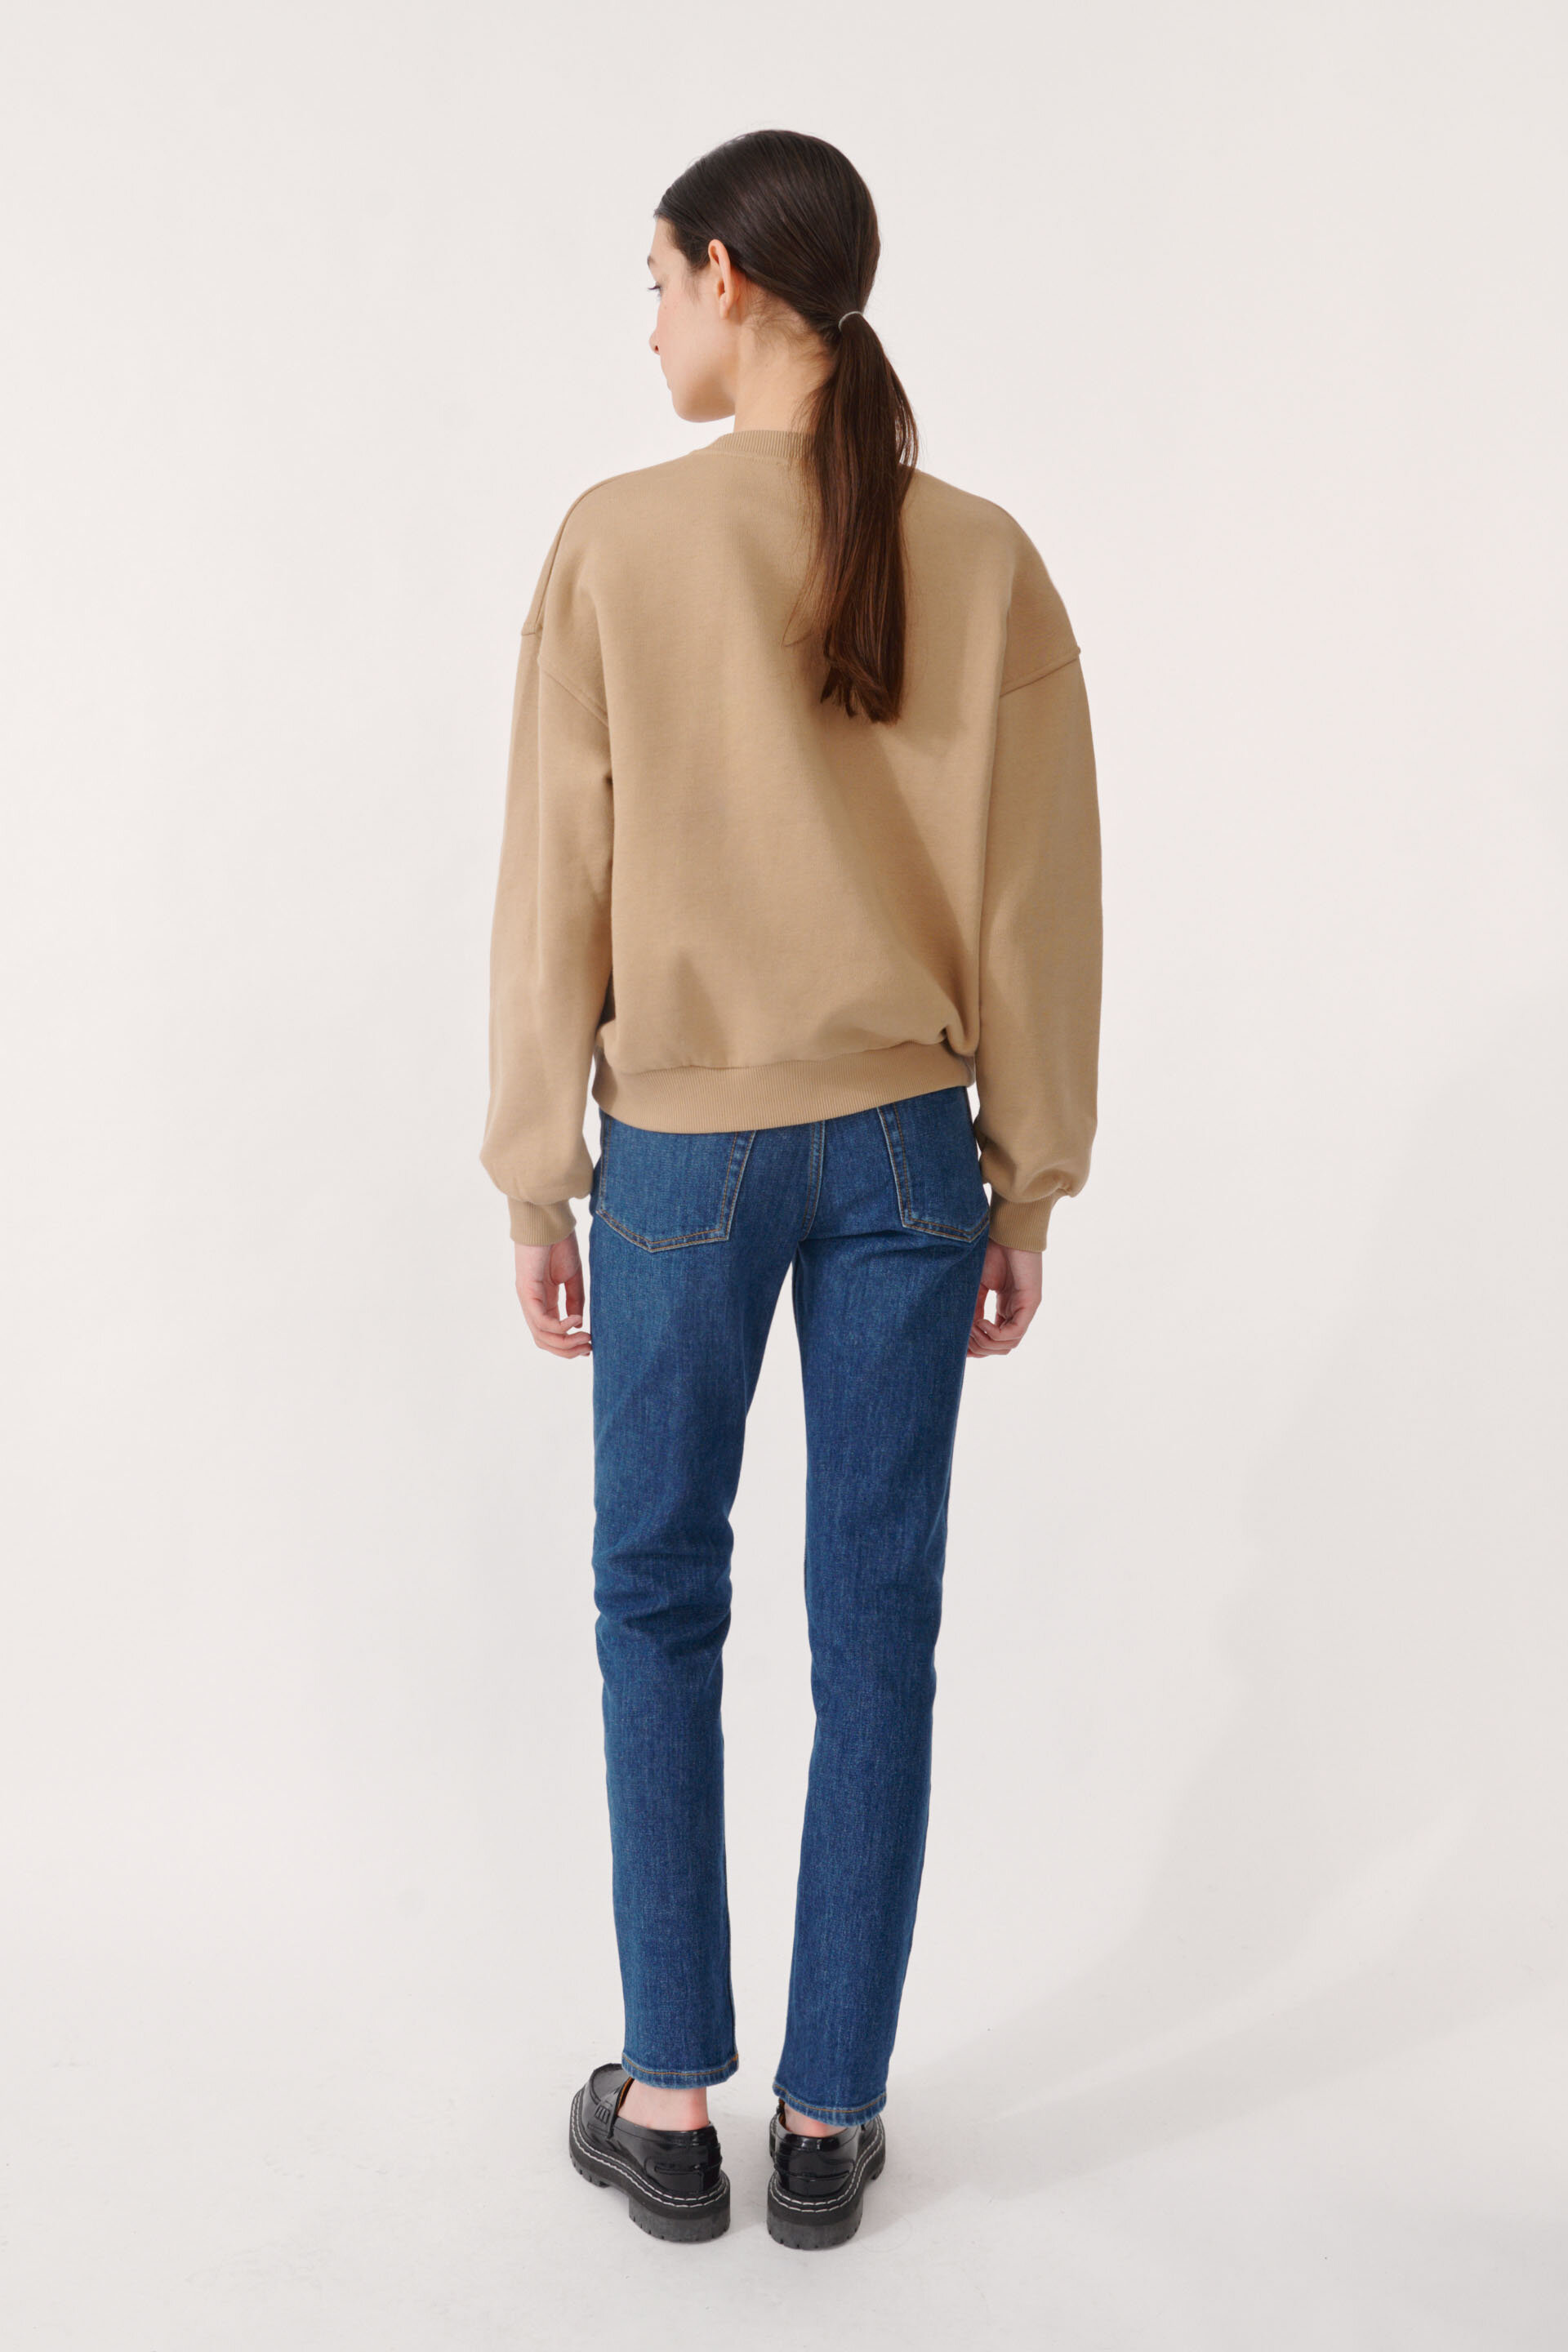 Jazara Sweater Camel This loose-fitting sweatshirt features a hip-length, ribbing at the sleeves and waist, and an embossed logo at the chest - detail image